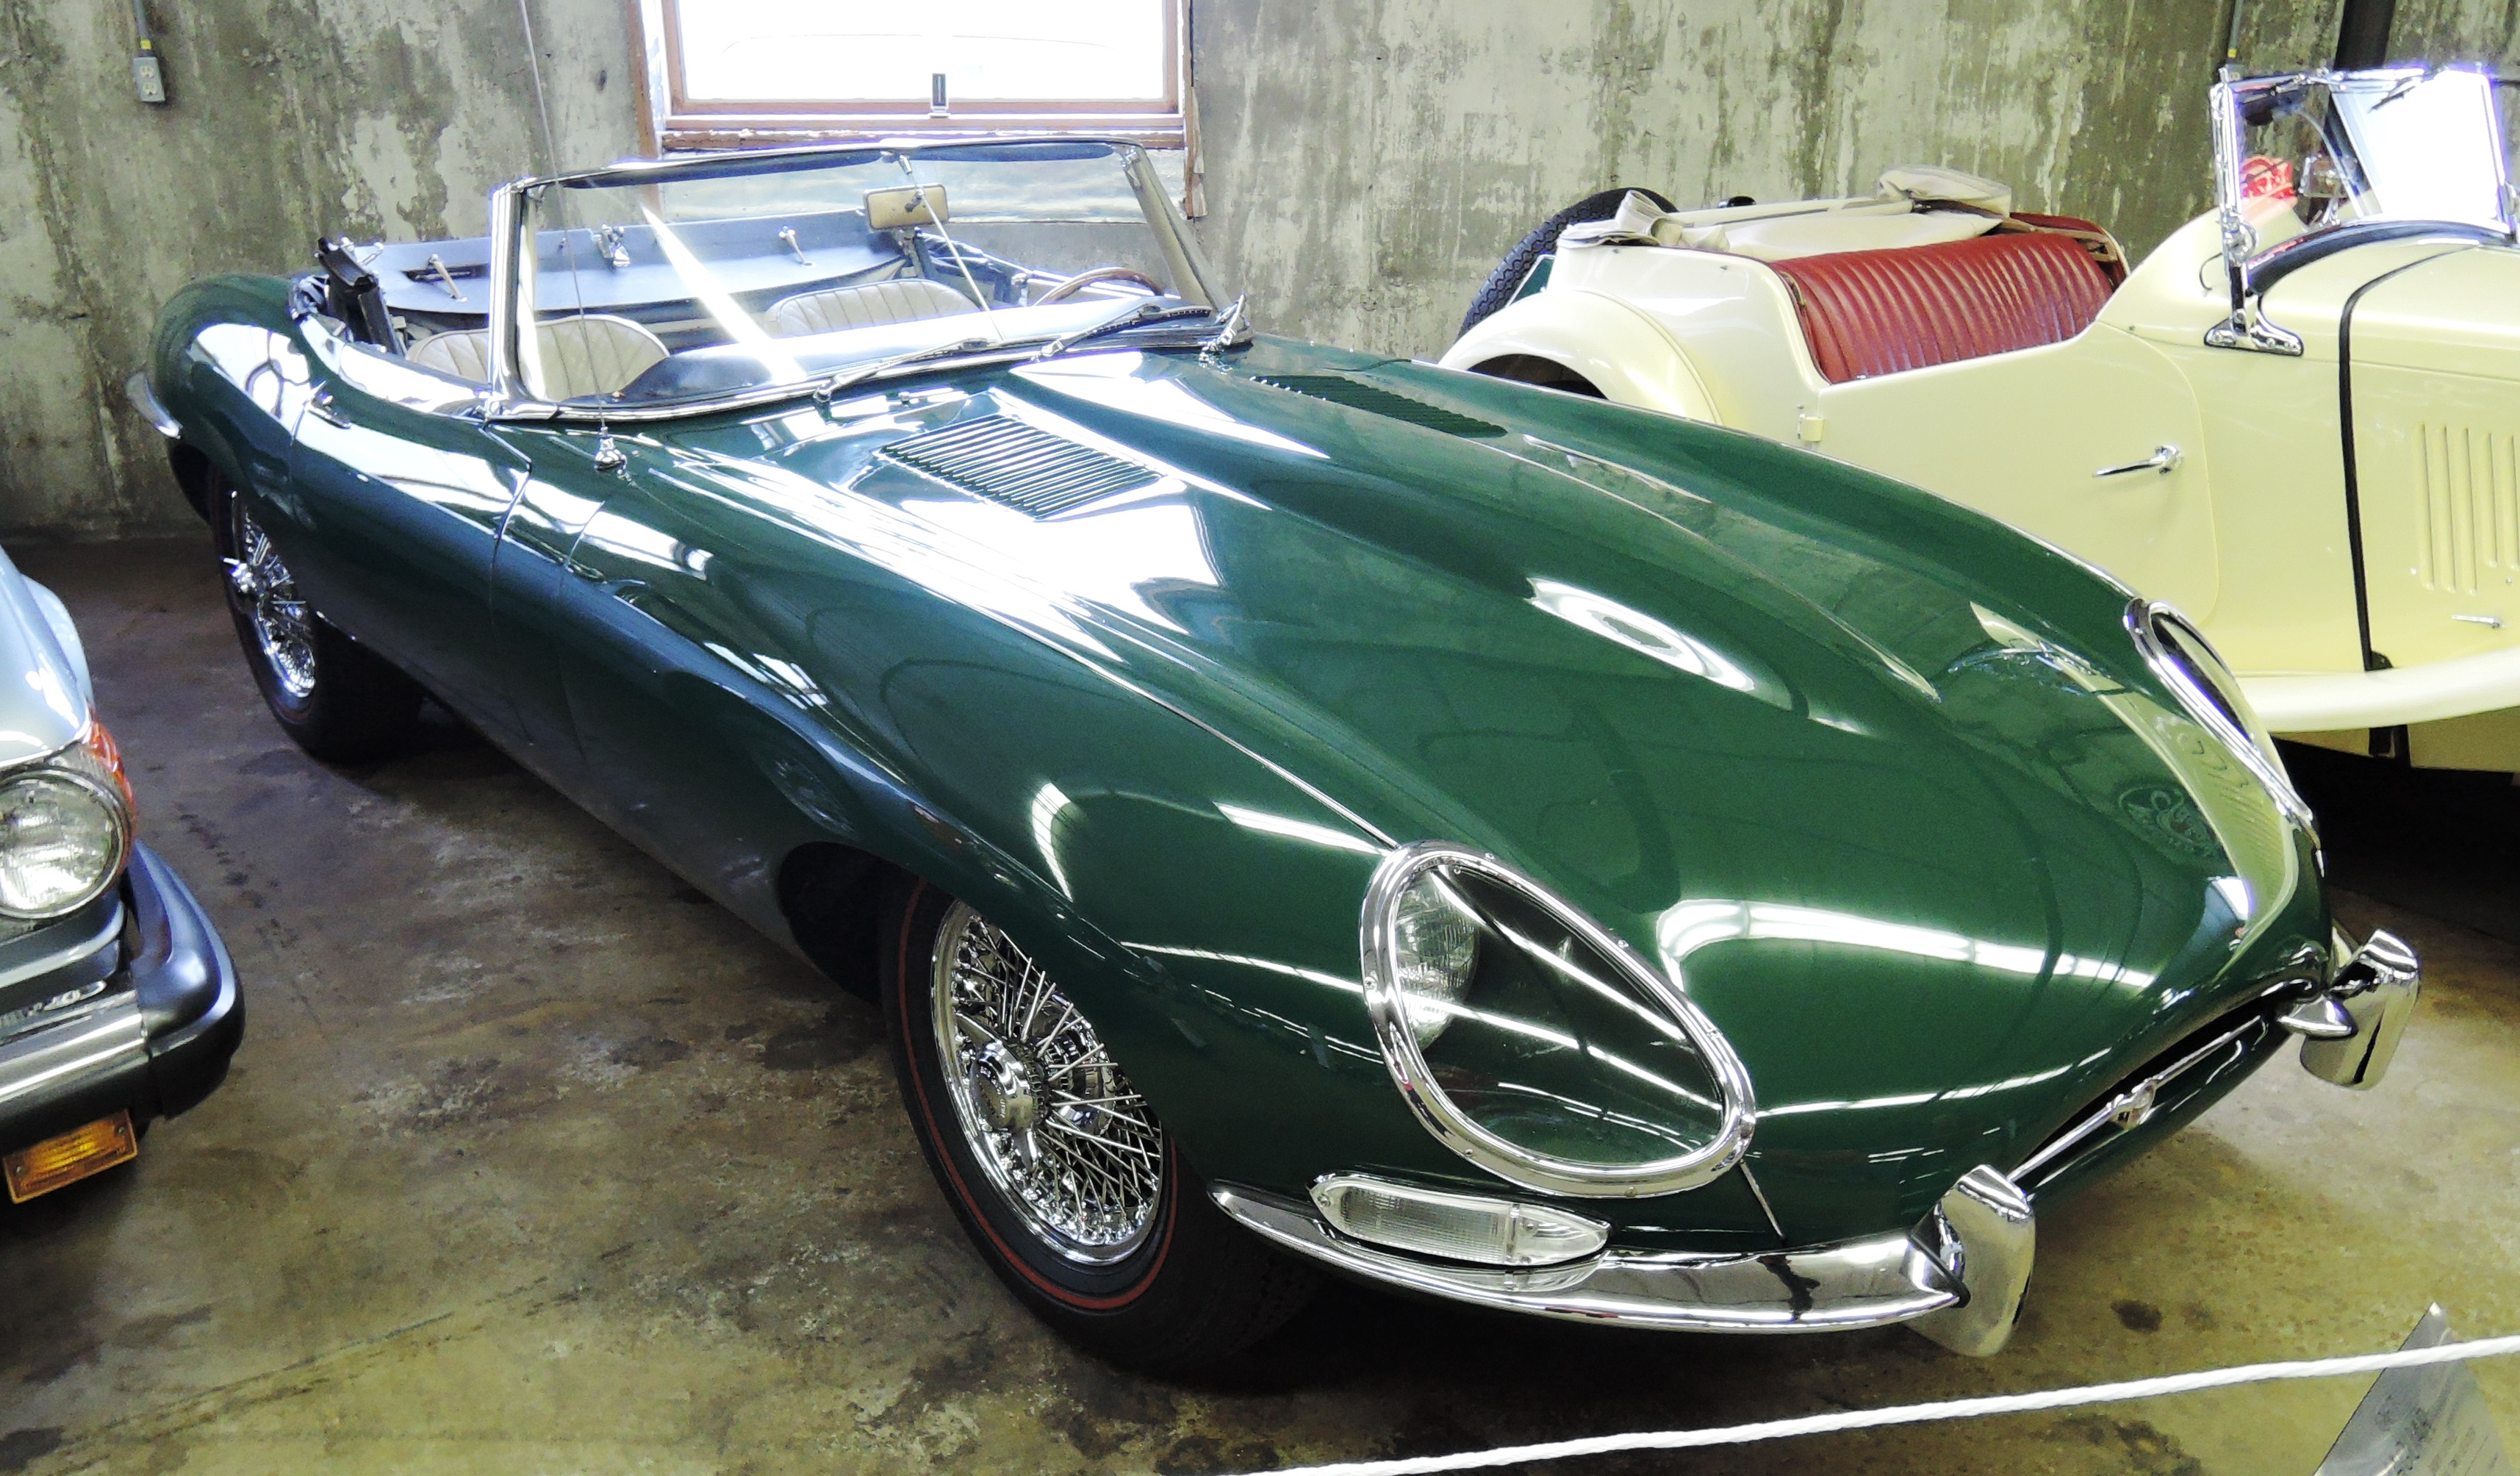 green 1967 Jaguar E-Type open 2-Seater - bahre car collection